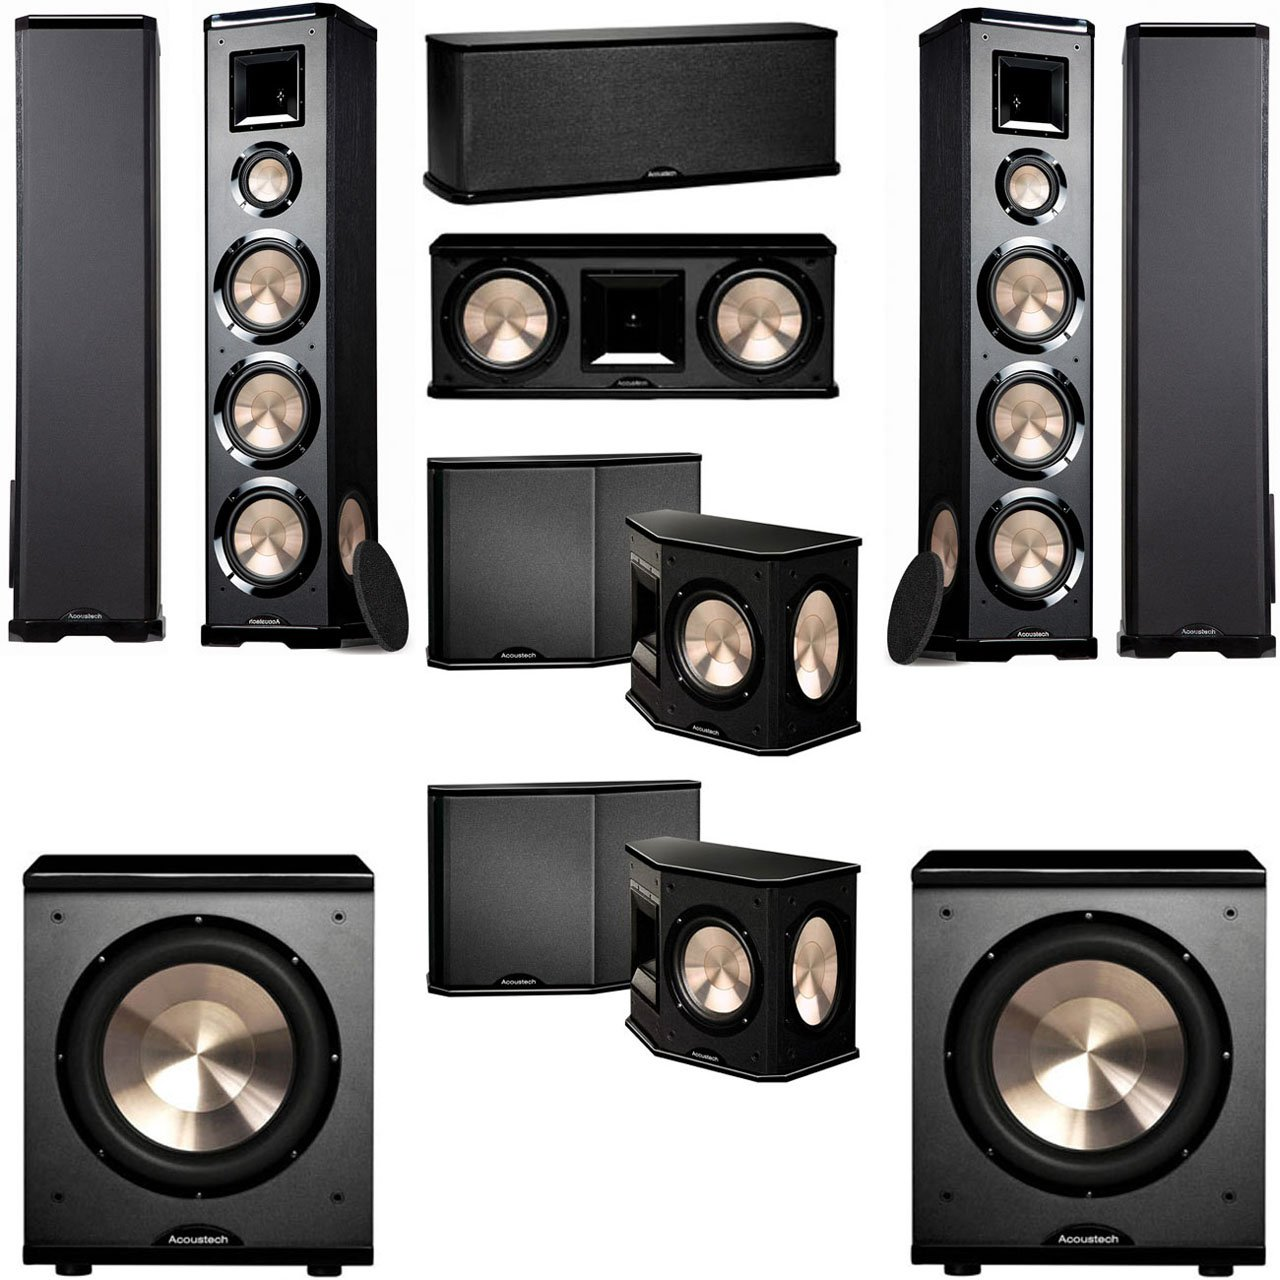 BIC Acoustech PL-980 7.2 Home Theater System-NEW!! PL-200II Sub by BIC